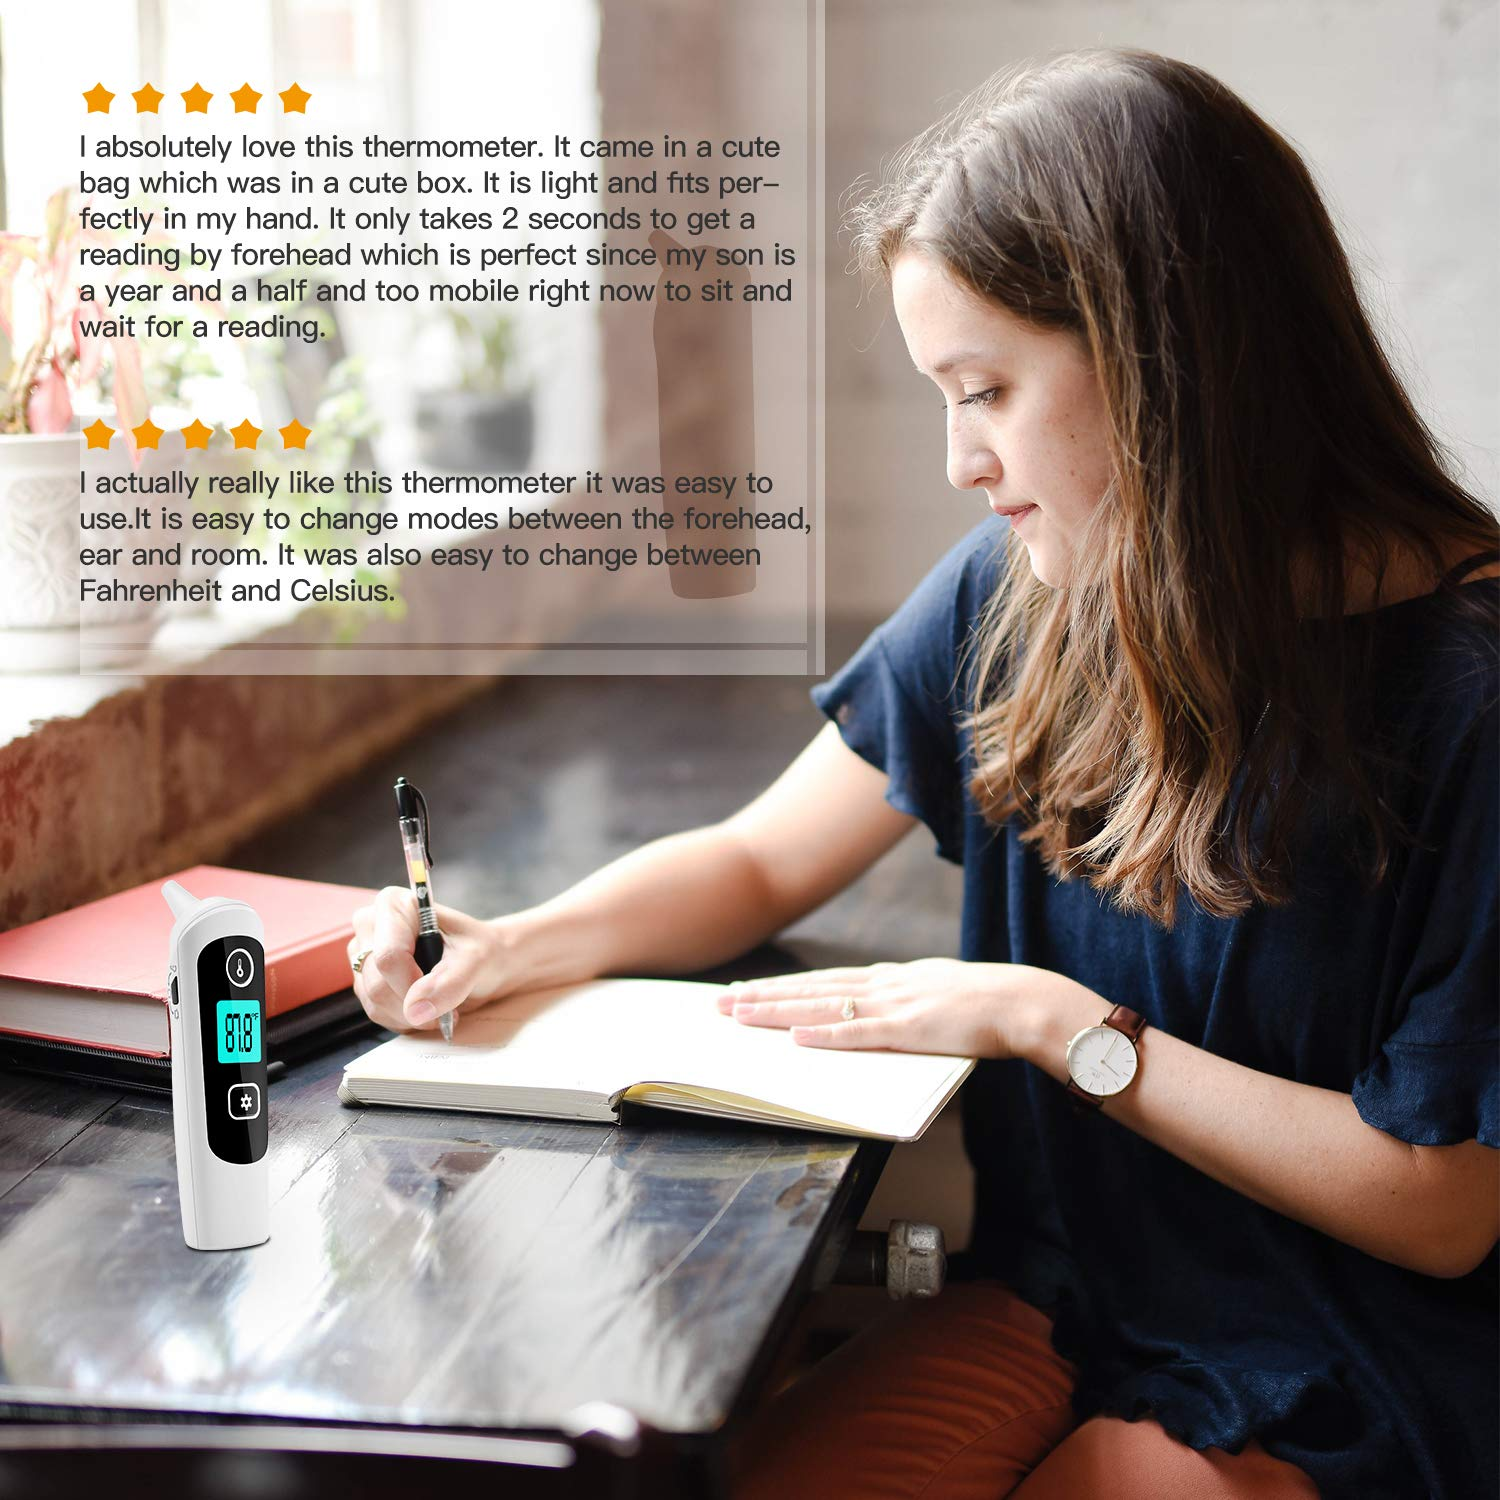 Medical Forehead and Ear Thermometer,Wandwoo 4-in-1 Digital Instant Reading Baby Infrared Thermometer for Fever,32 Memory Function for Adults and Objects with Fever Indicator - CE and FDA Approved by wandwoo (Image #7)